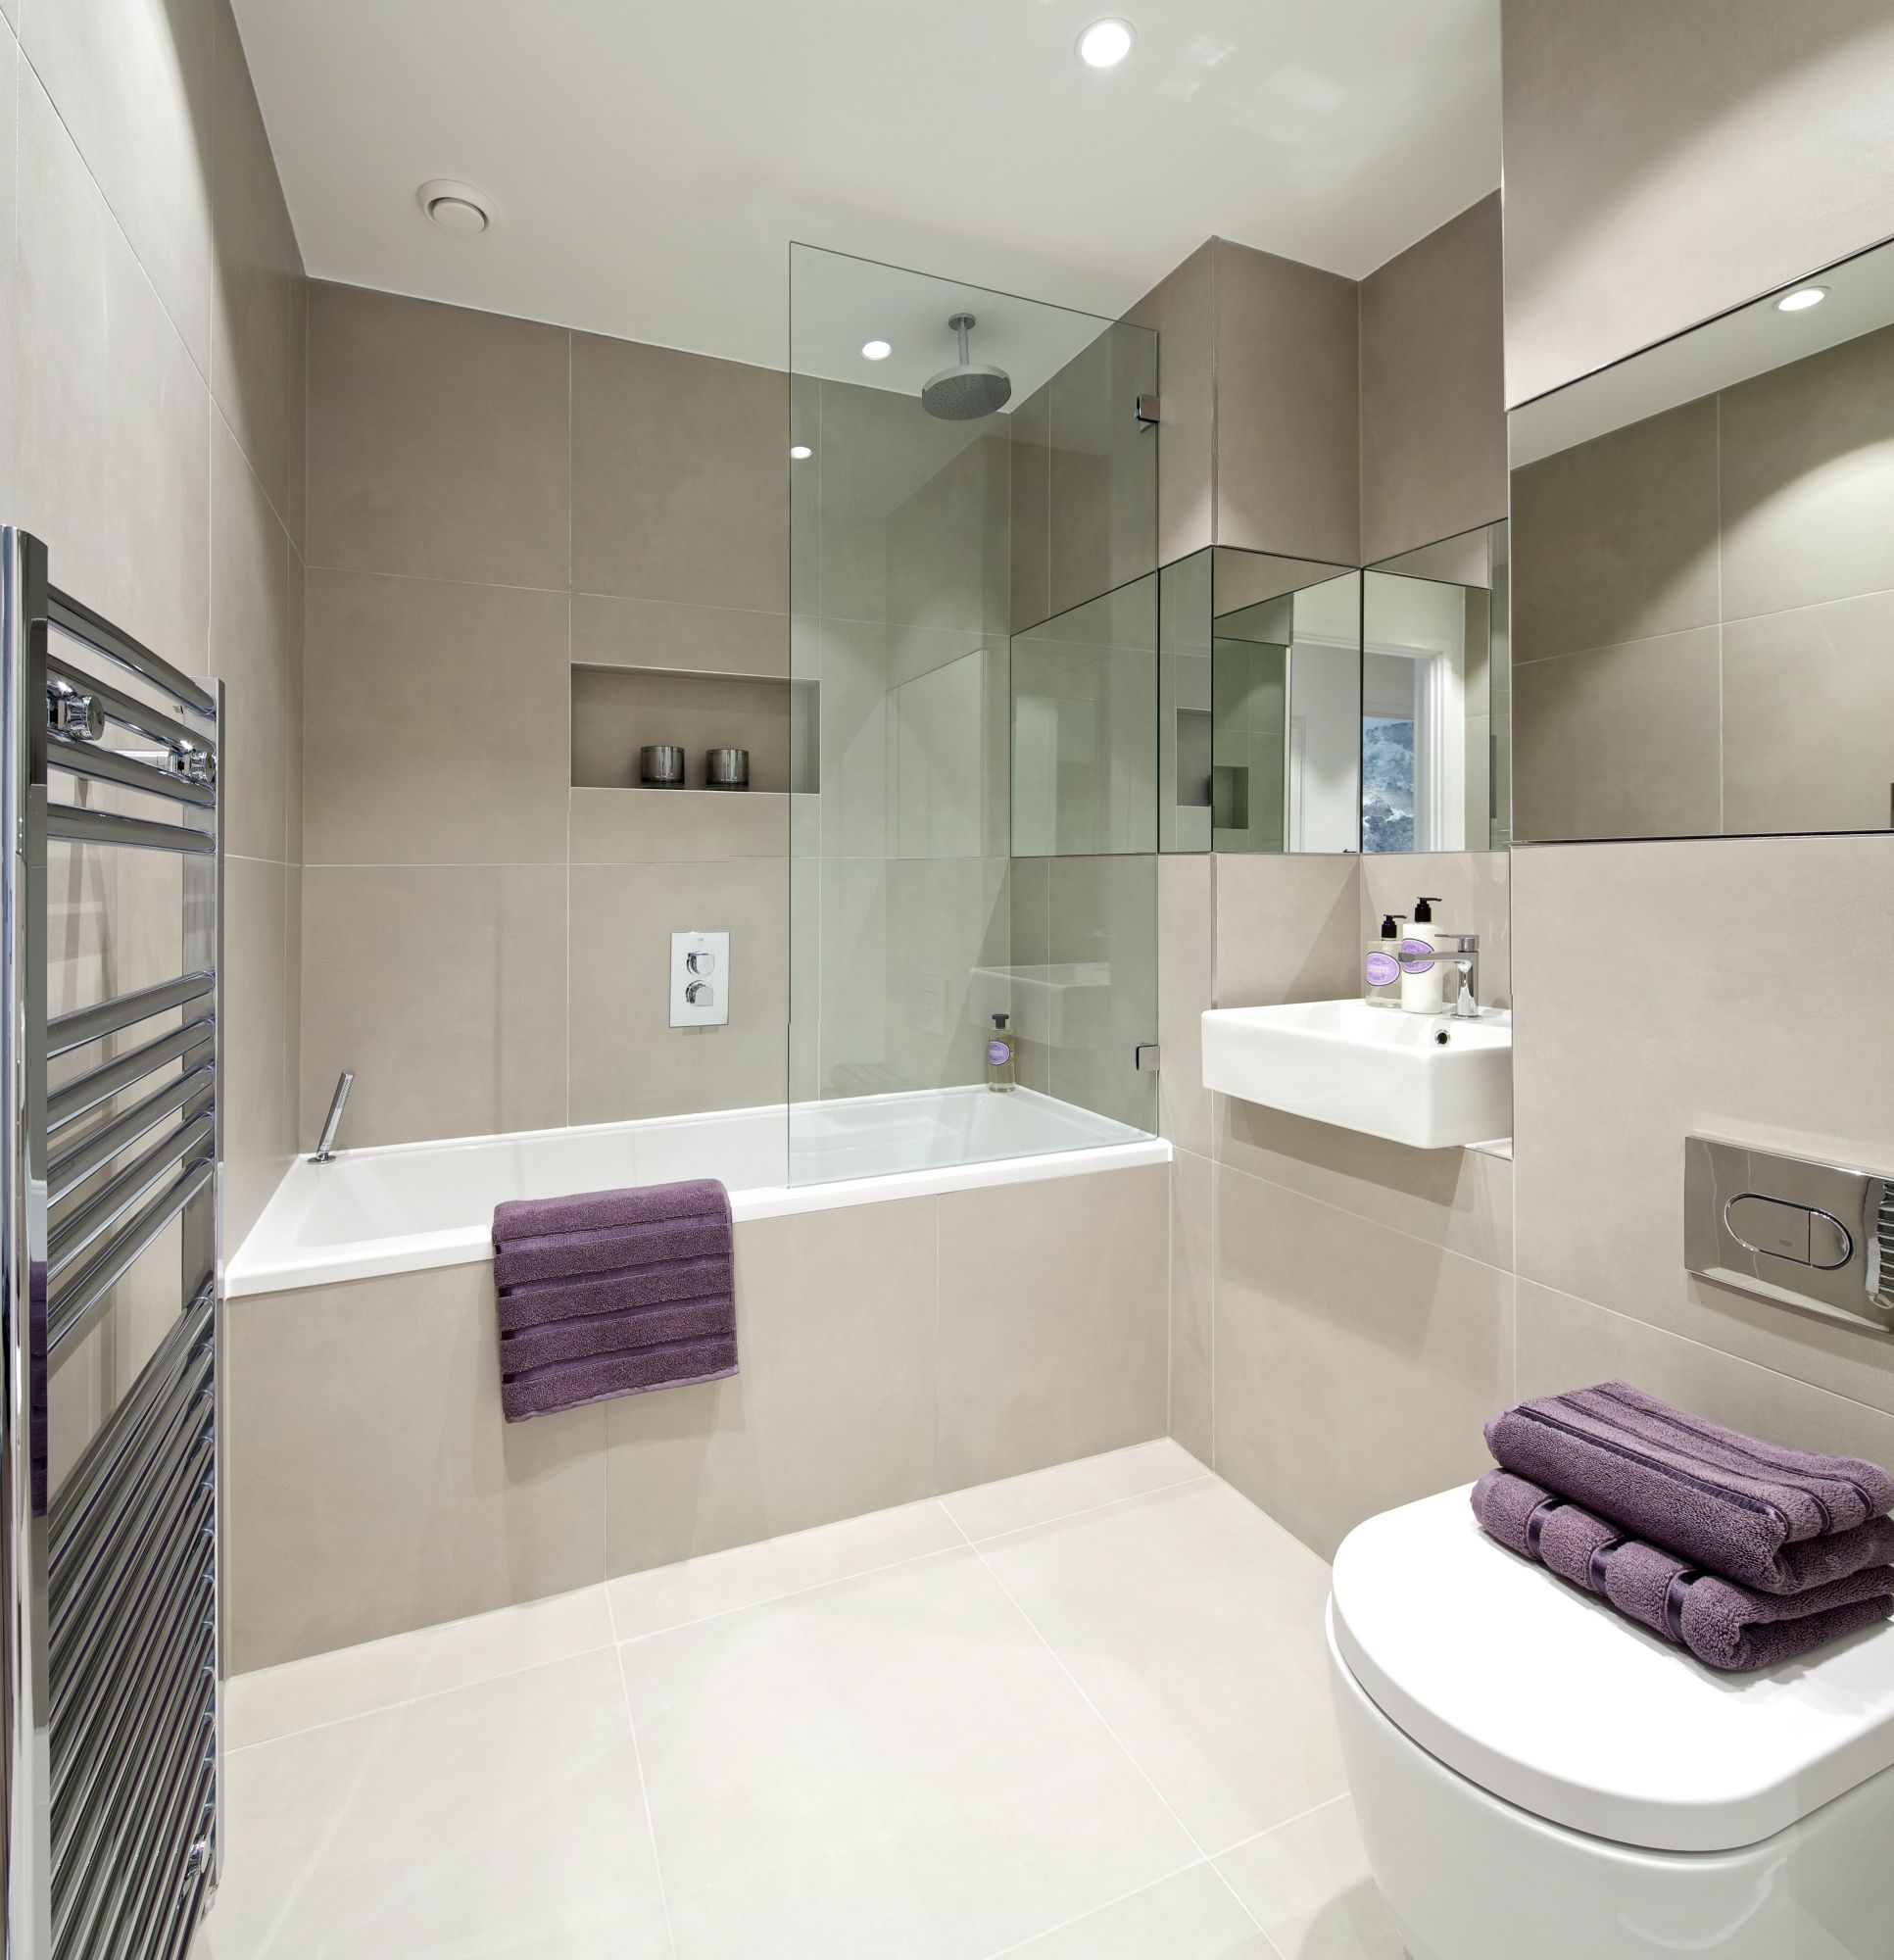 Stunning home interiors bathroom another stunning show for Beautiful houses interior bathrooms